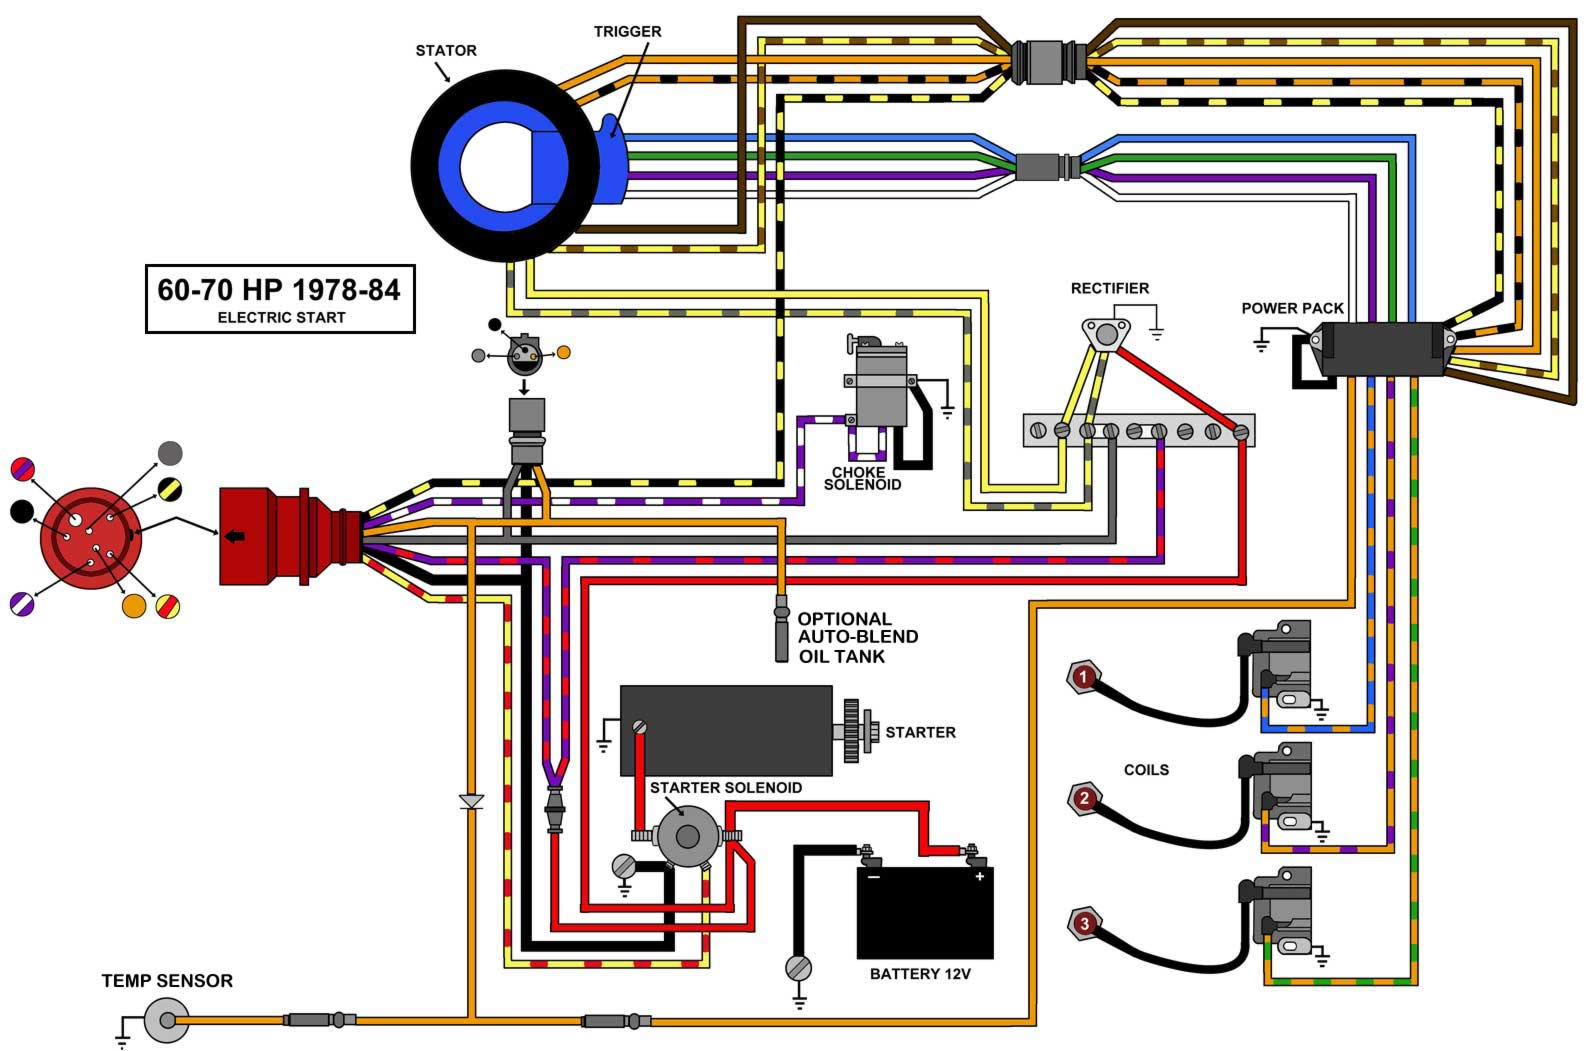 78 84_3 CYL_EL wiring tach from johnson controls page 1 iboats boating forums wiring diagram for 30 hp johnson motor at mifinder.co